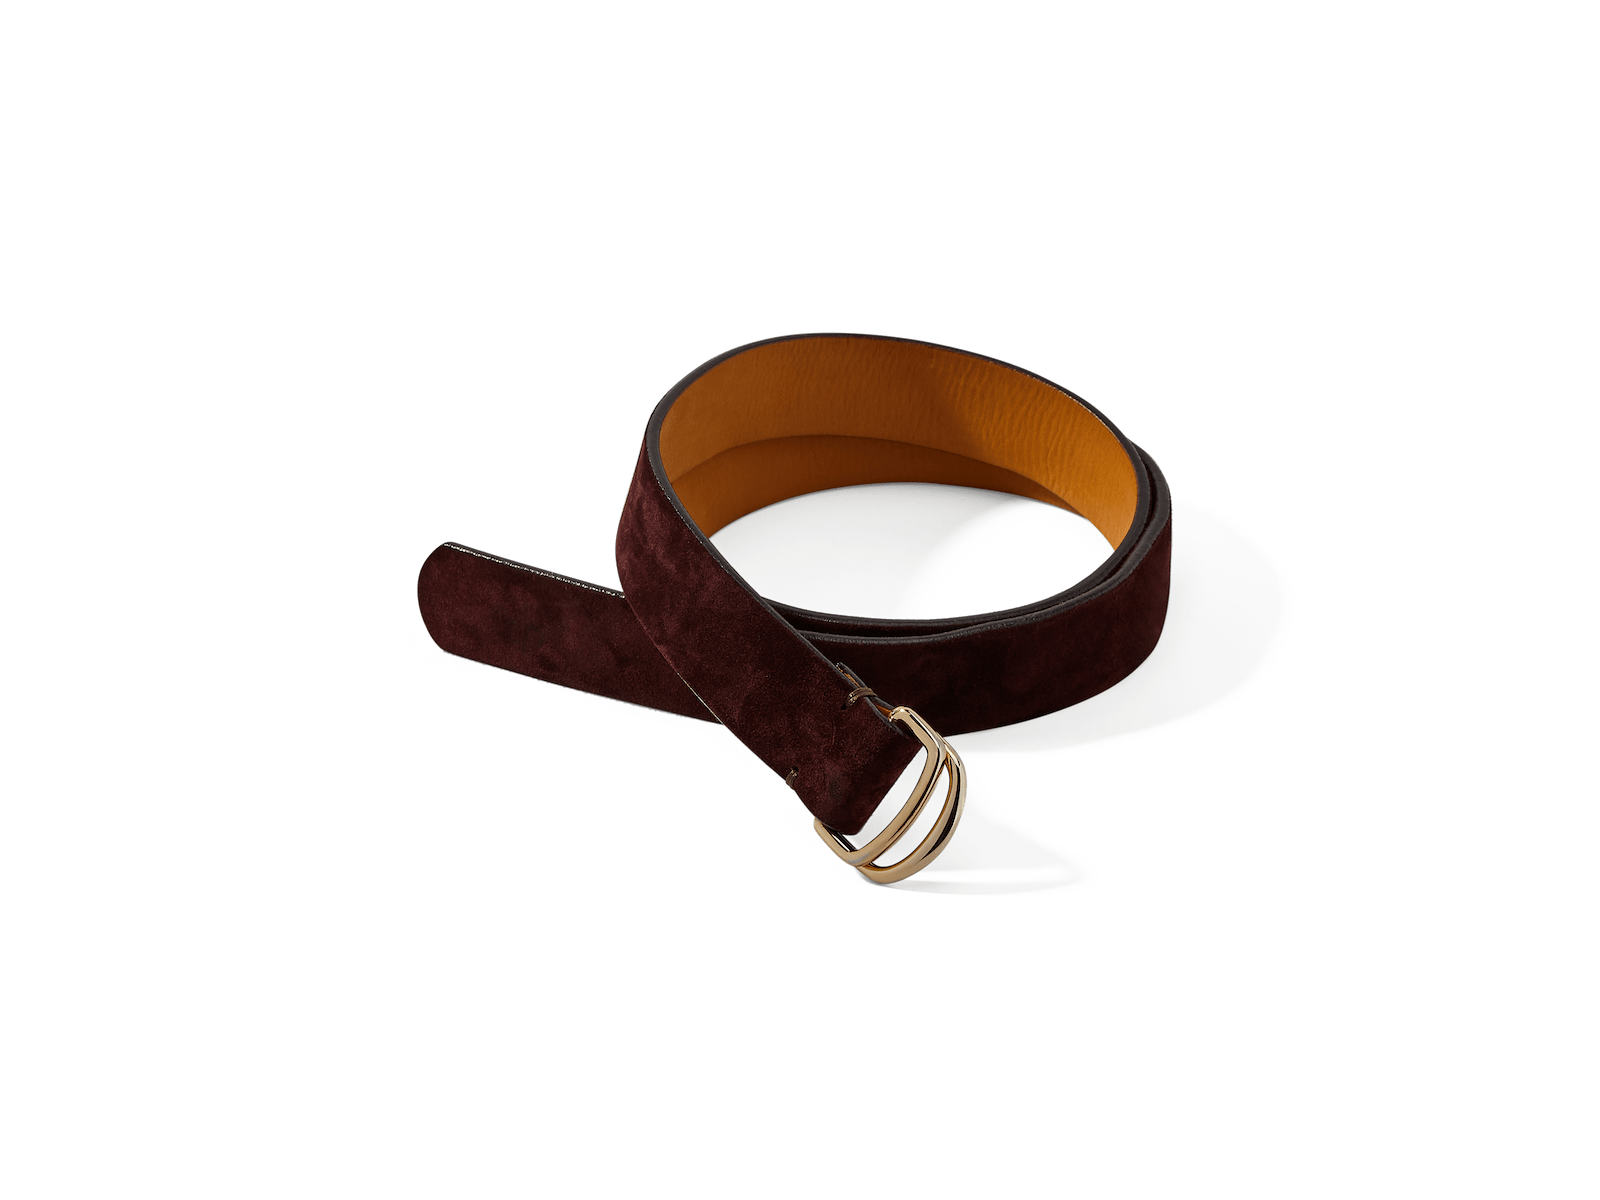 Sagan Belt Rings in Oxblood Glove Suede with Pale Gold Rings